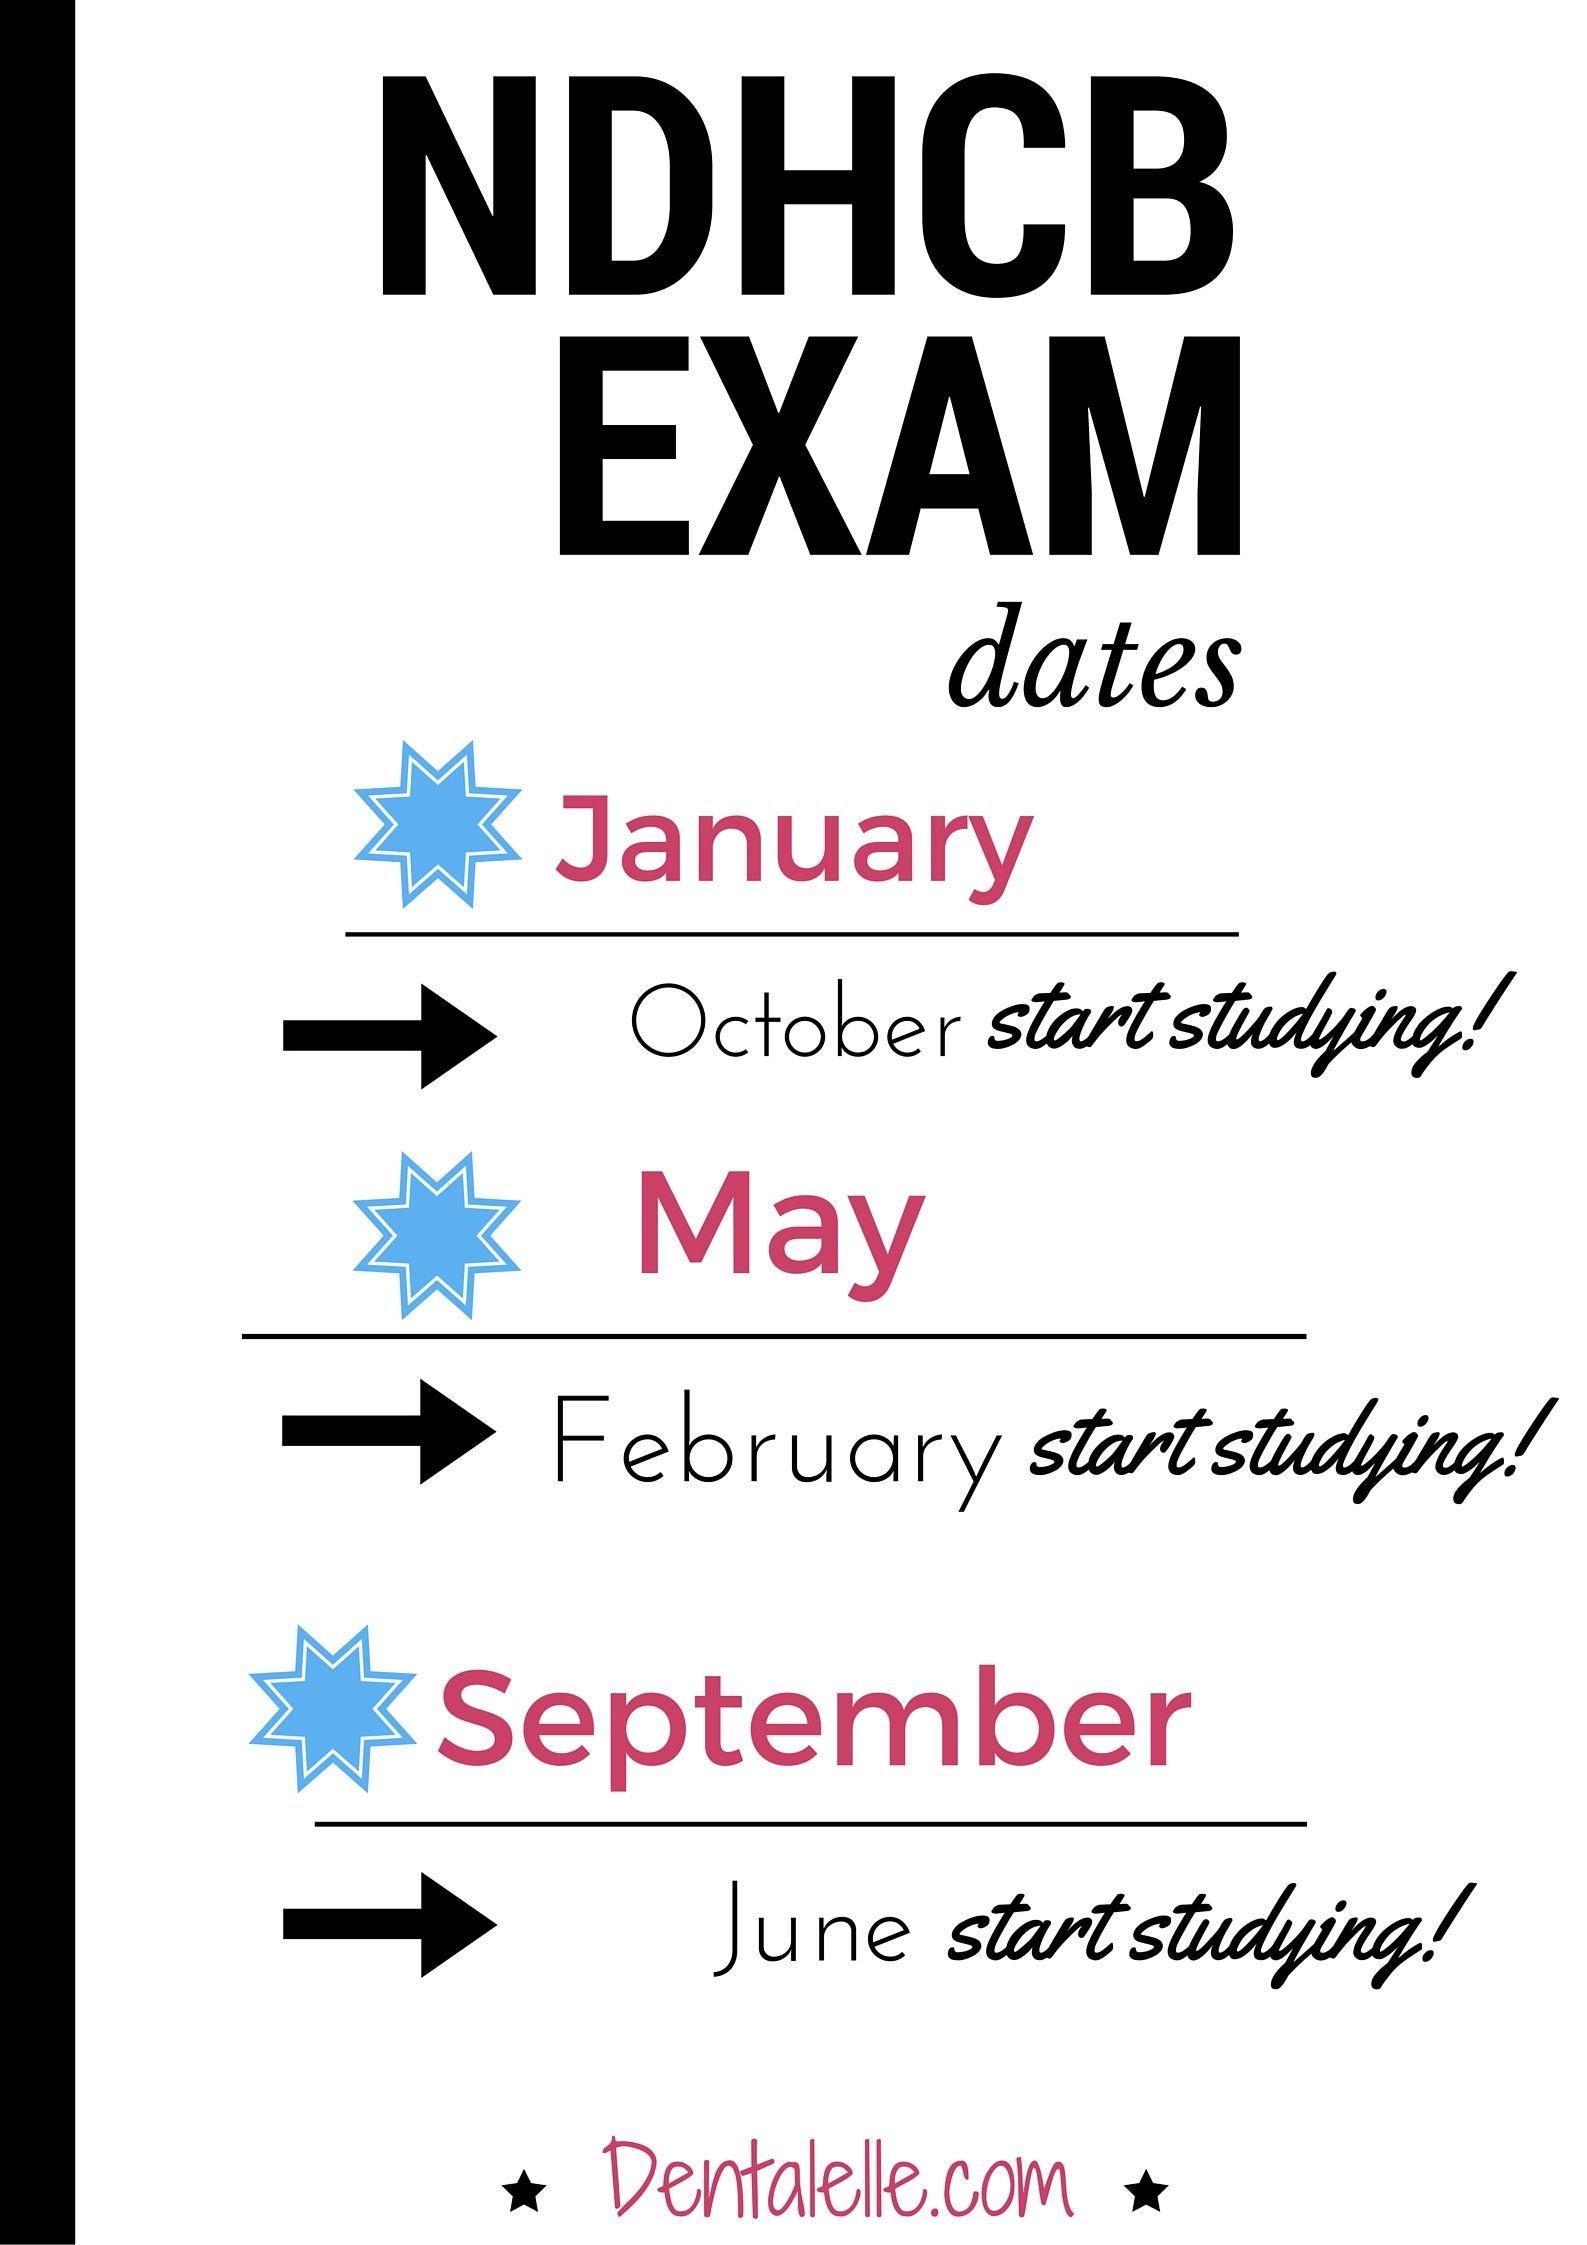 NDHCB exam dates! Keep this for your records dental hygiene students. Visit www.dentalelle.com for self study study materials, mock exams, and full prep courses with tutoring!